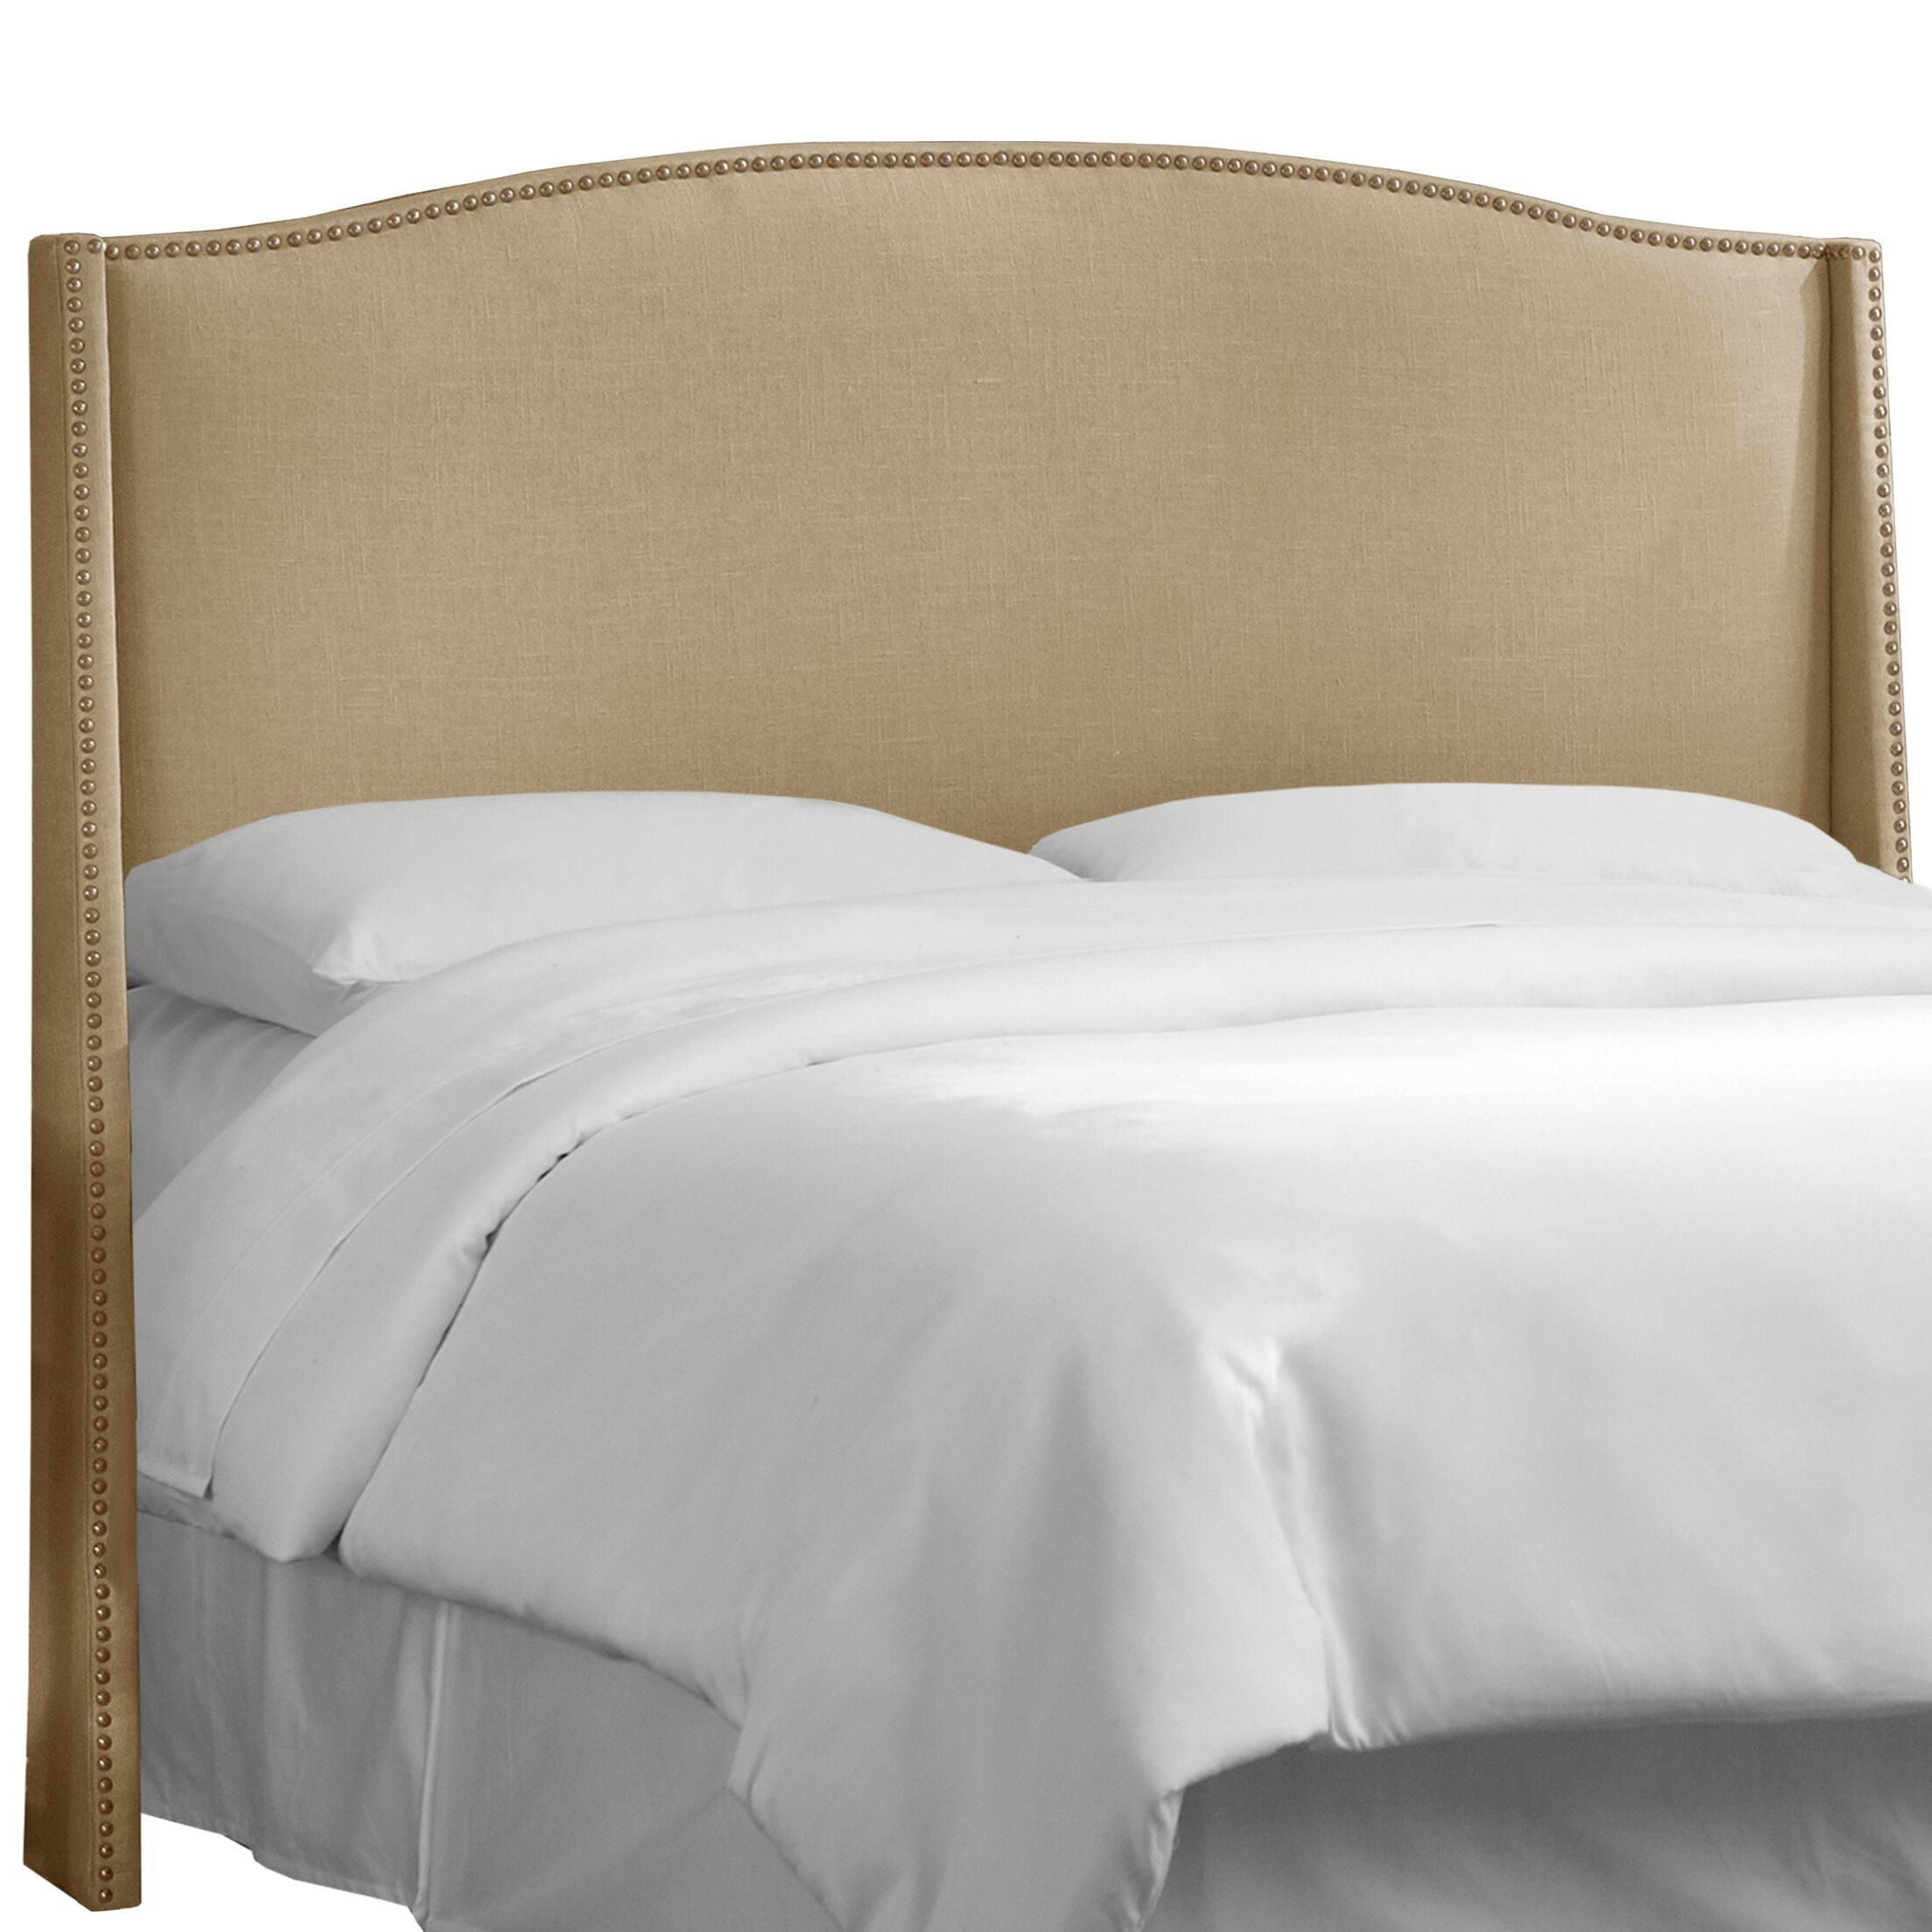 Deanery Linen Nail Button Upholstered Wingback Headboard Upholstery: Linen Sandstone, Size: California King